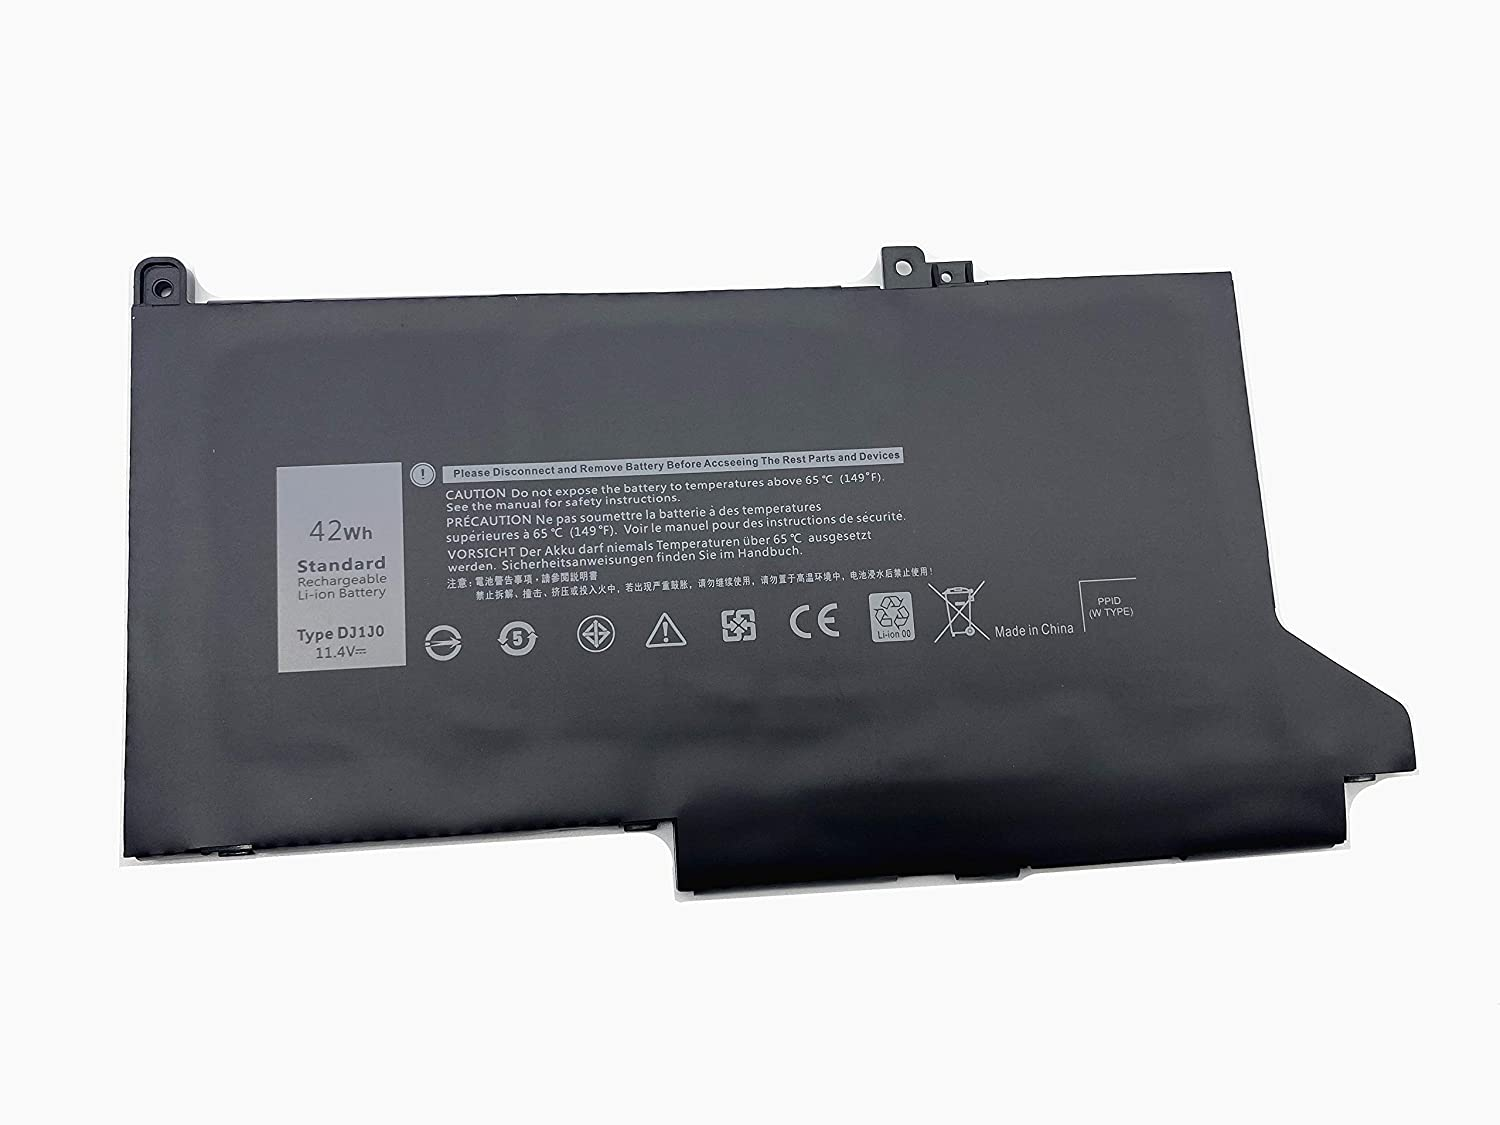 Aluo DJ1J0 11.4V42Wh Laptop Battery for Dell Latitude 12 7280 7290 E7280 E7290 13 7380 7390 E7380 E7390 14 7480 7490 E7480 E7490 Series Notebook 451-BBZL C27RW PGFX4 ONFOH DJ1JO K8X0T KHY0C